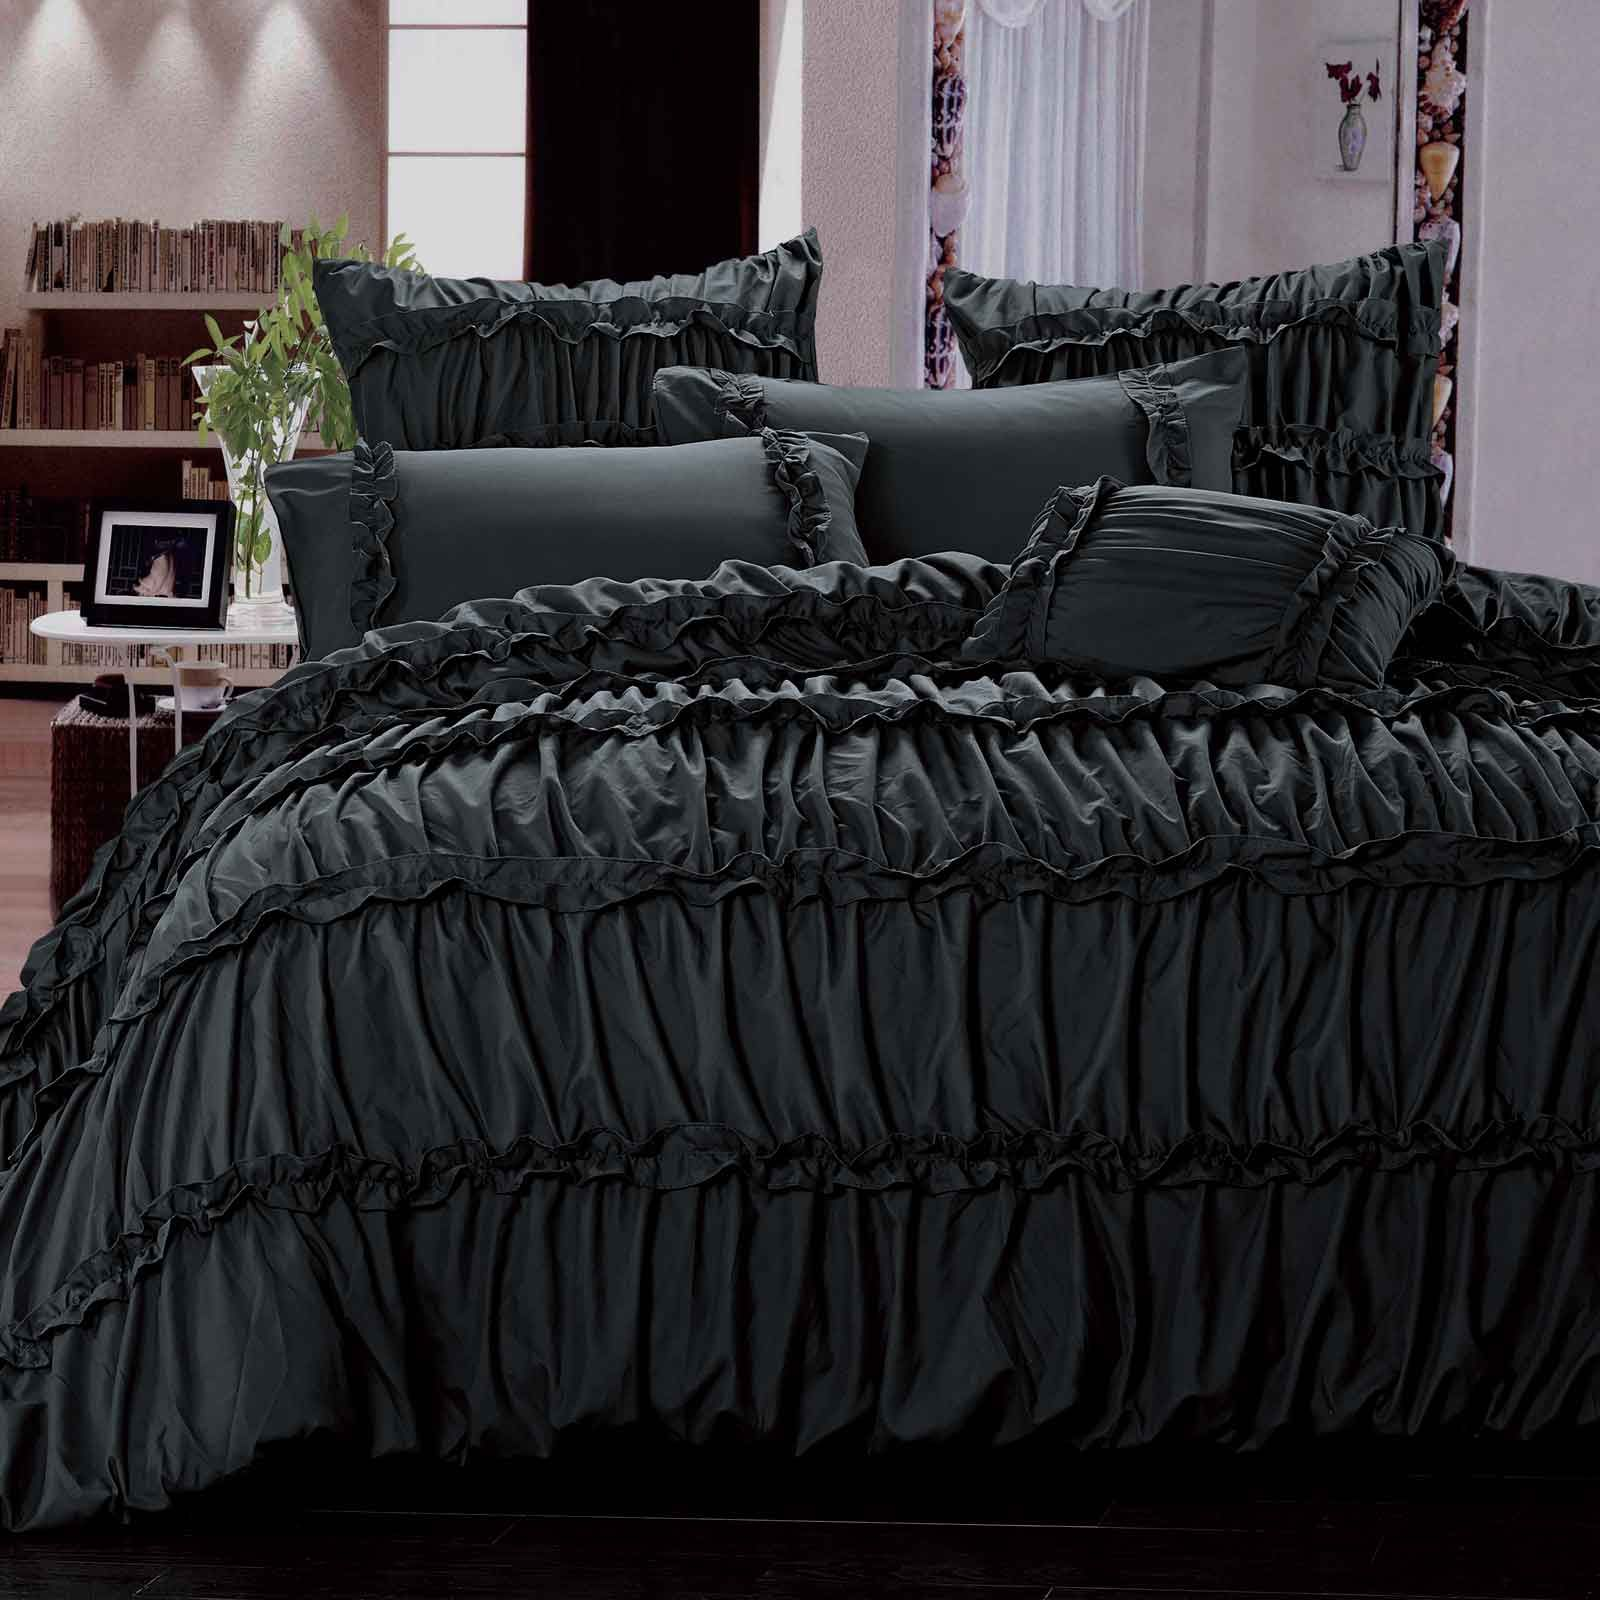 Black and purple bed sheets - Ruffle Bedding Shabby Chic Set Modern Bedding Designs